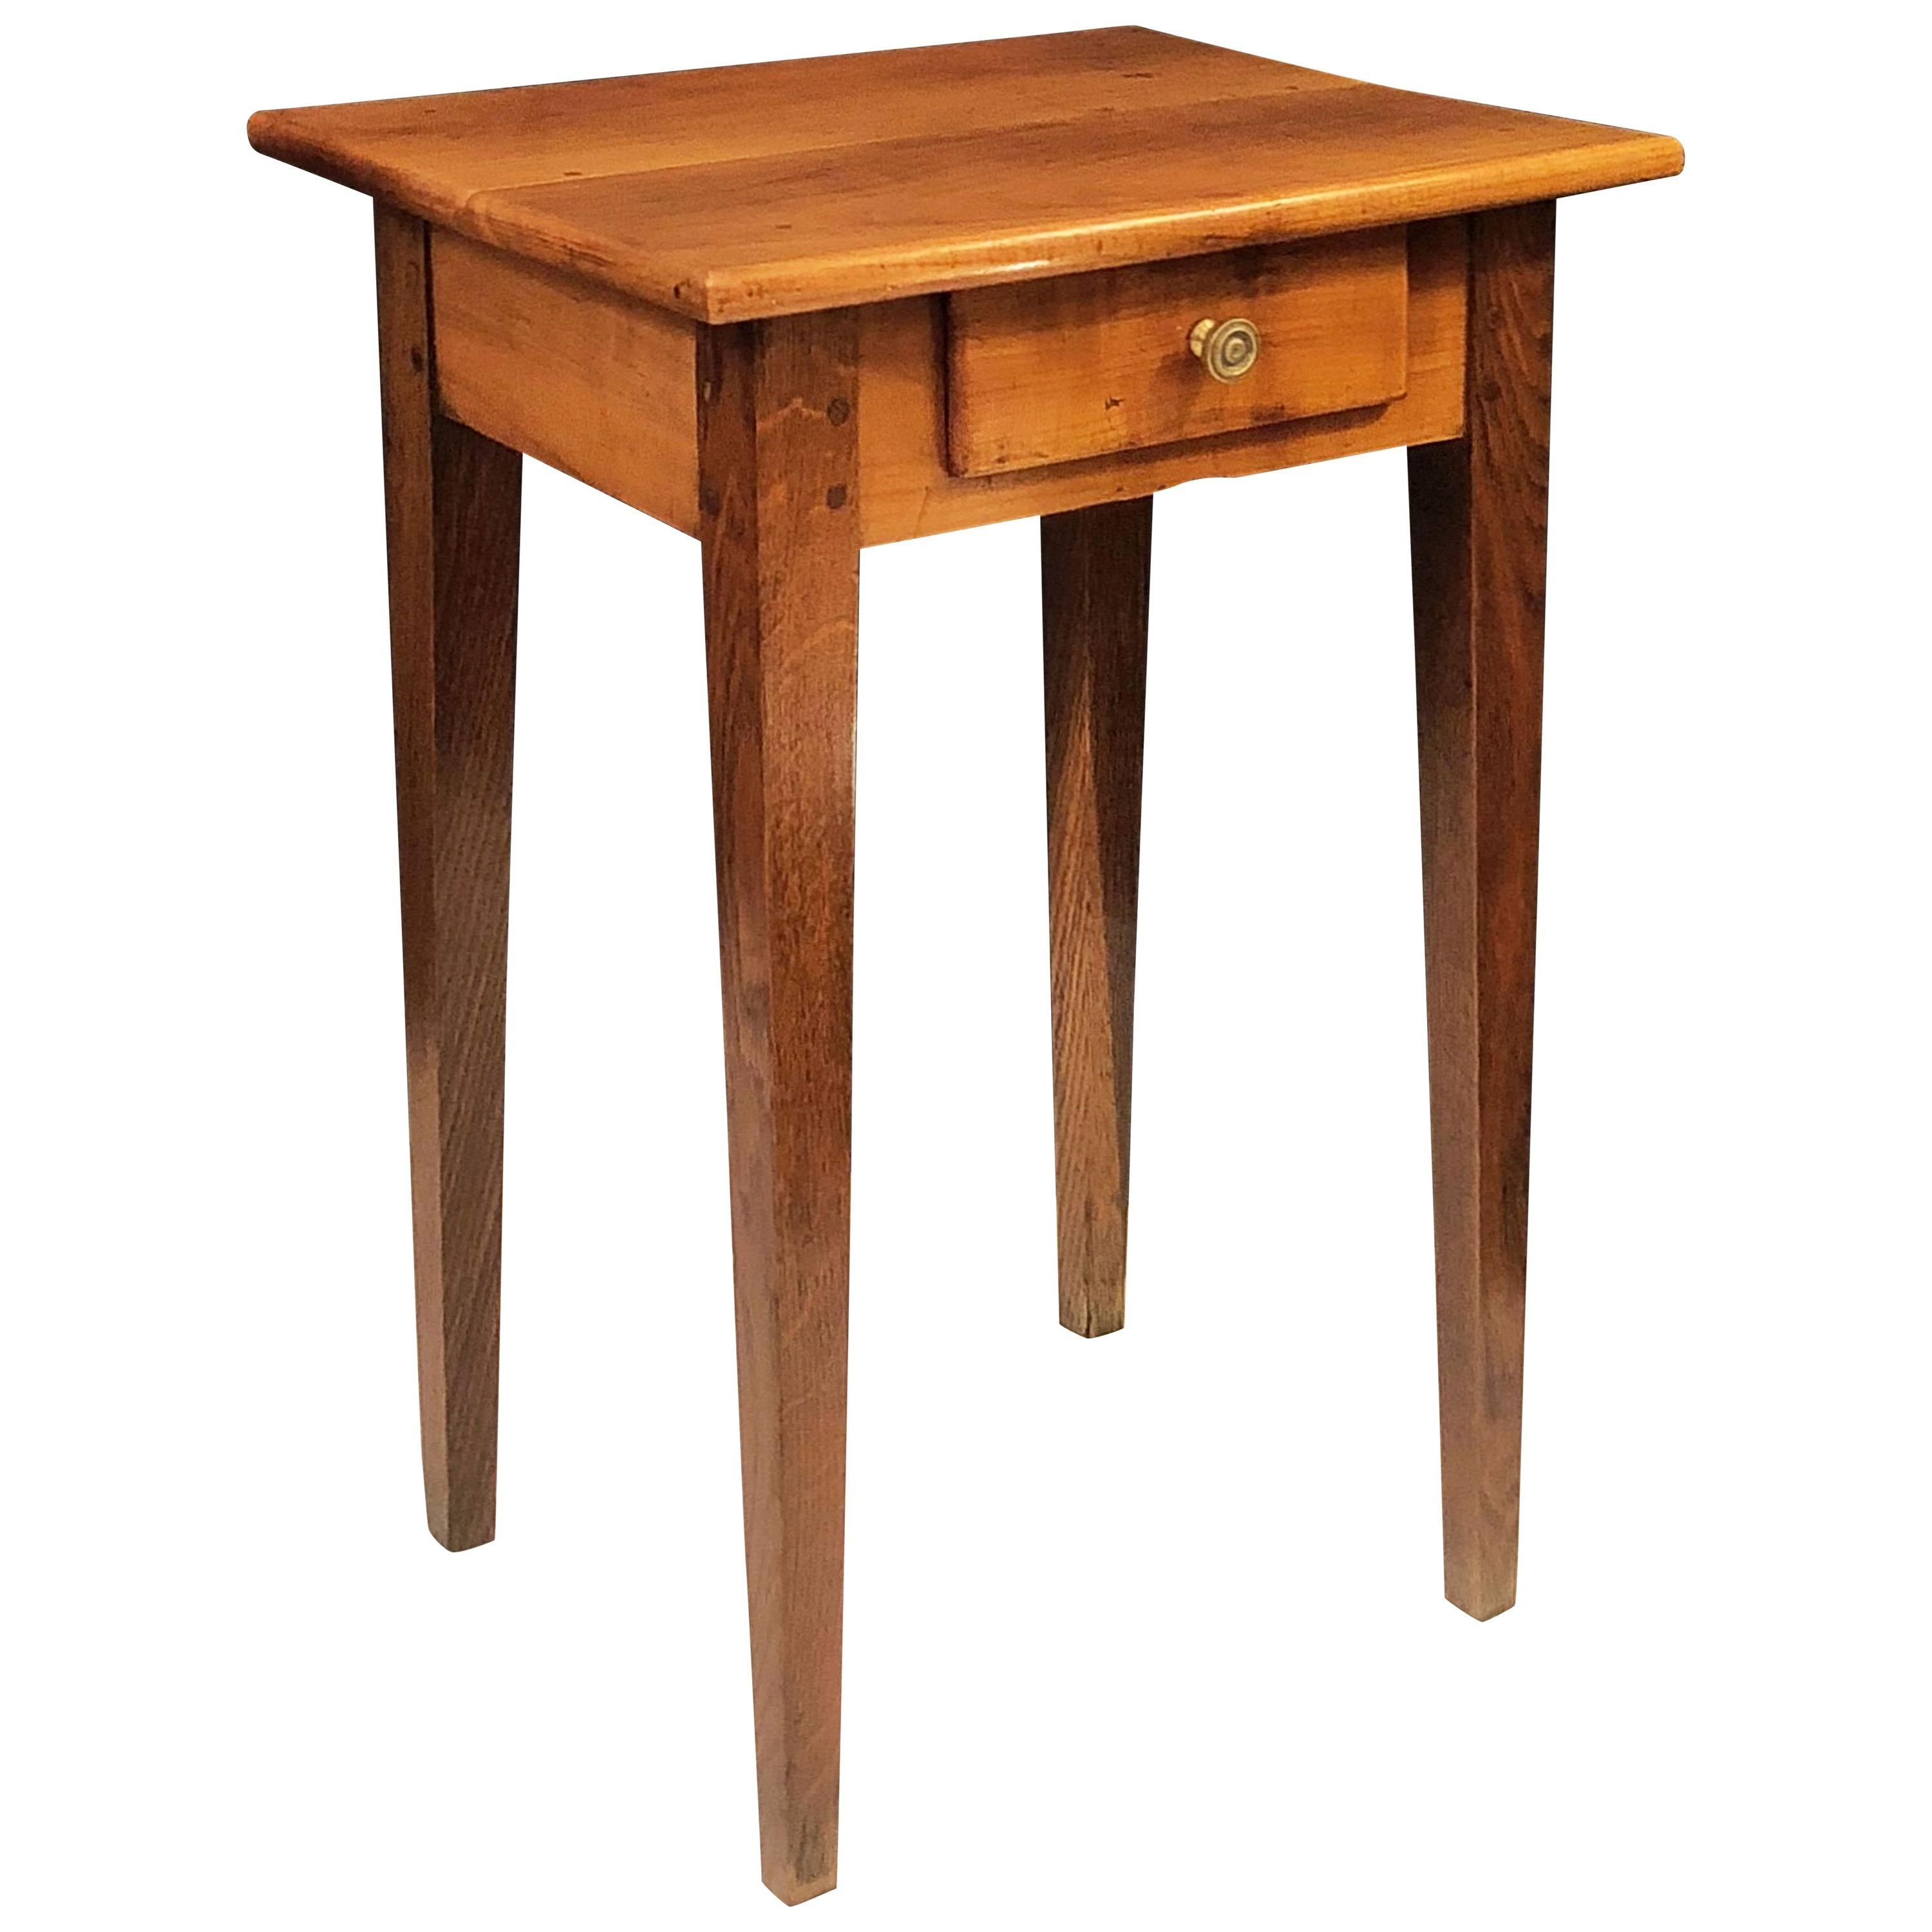 French Side or End Table of Cherry and Oak with Drawer